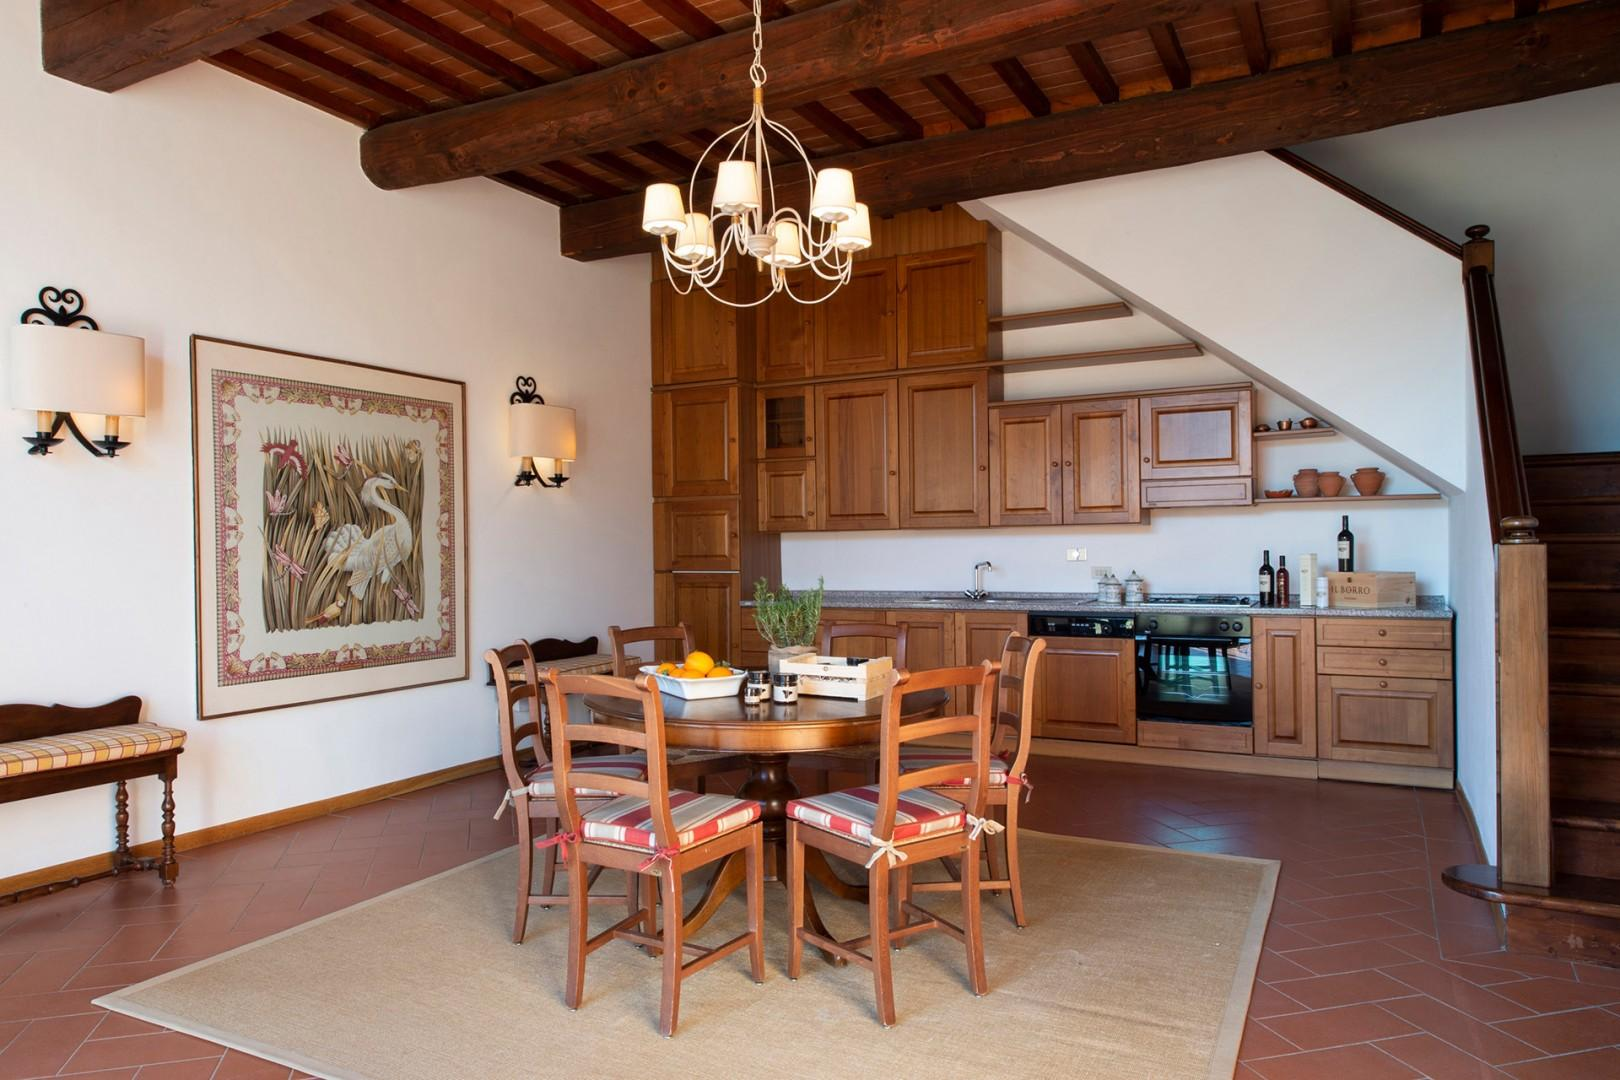 Dining room and fully equipped kitchen.